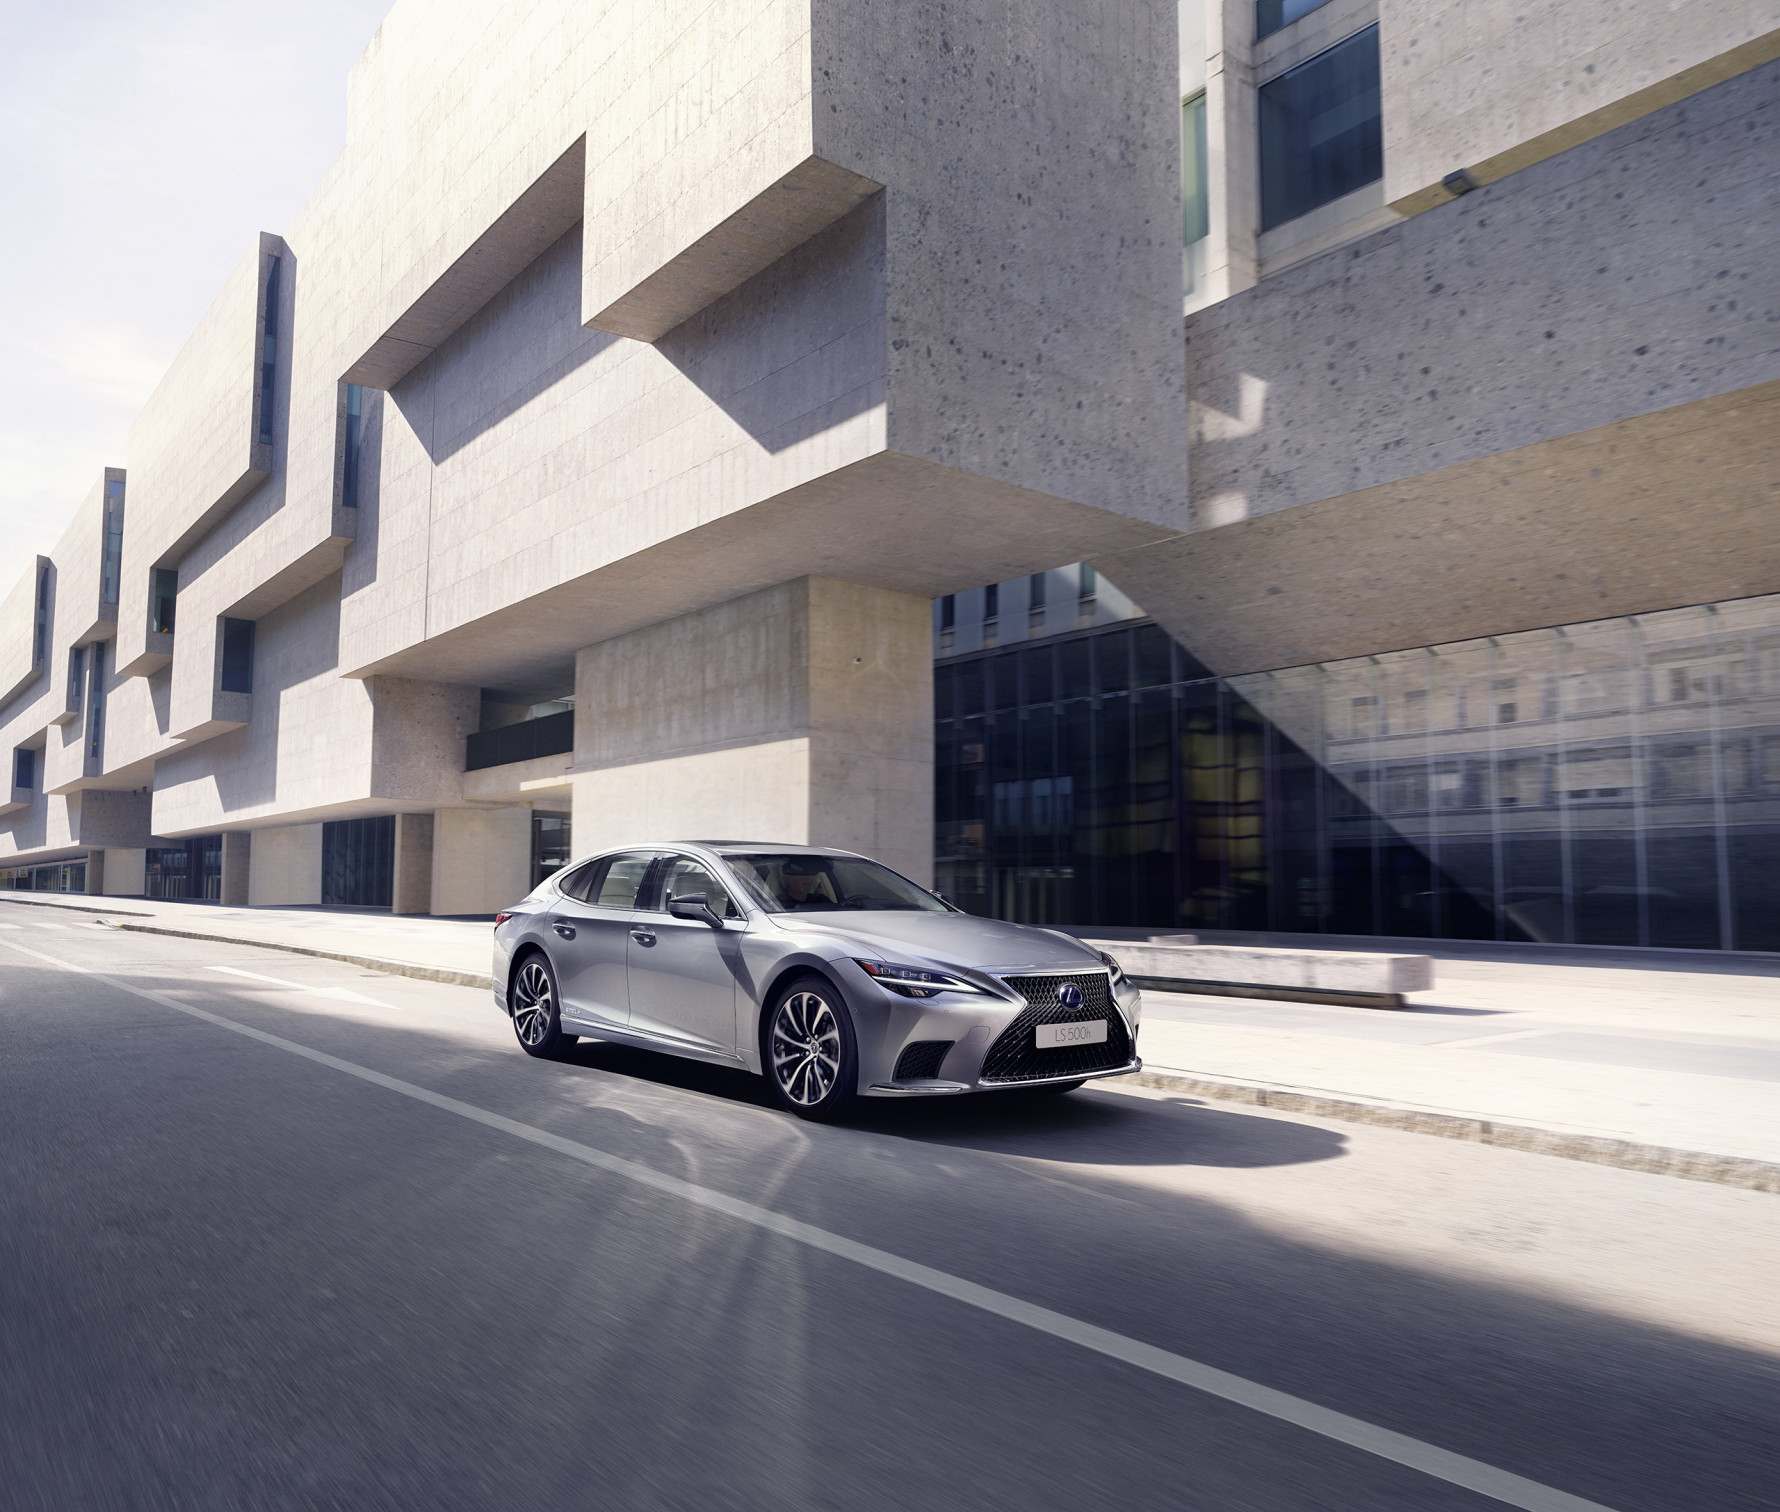 The flagship Lexus LS sedan to make its SA debut in late 2021